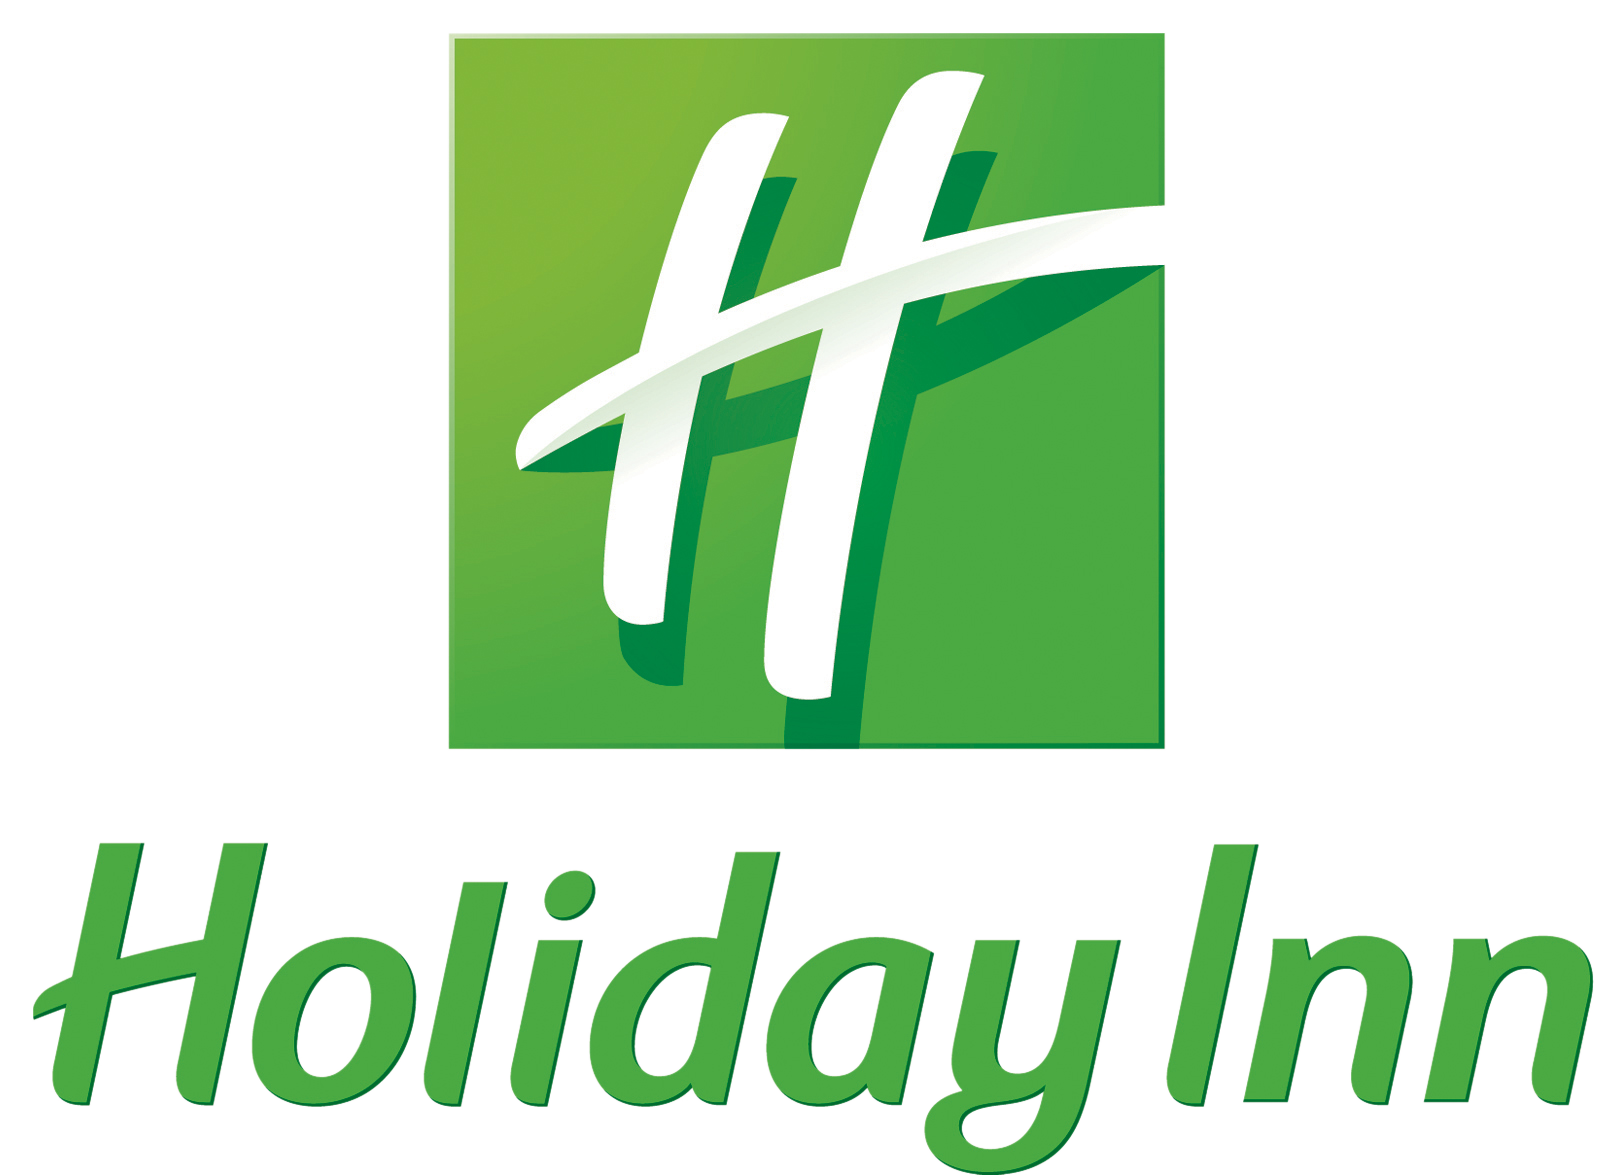 Holiday Inn1